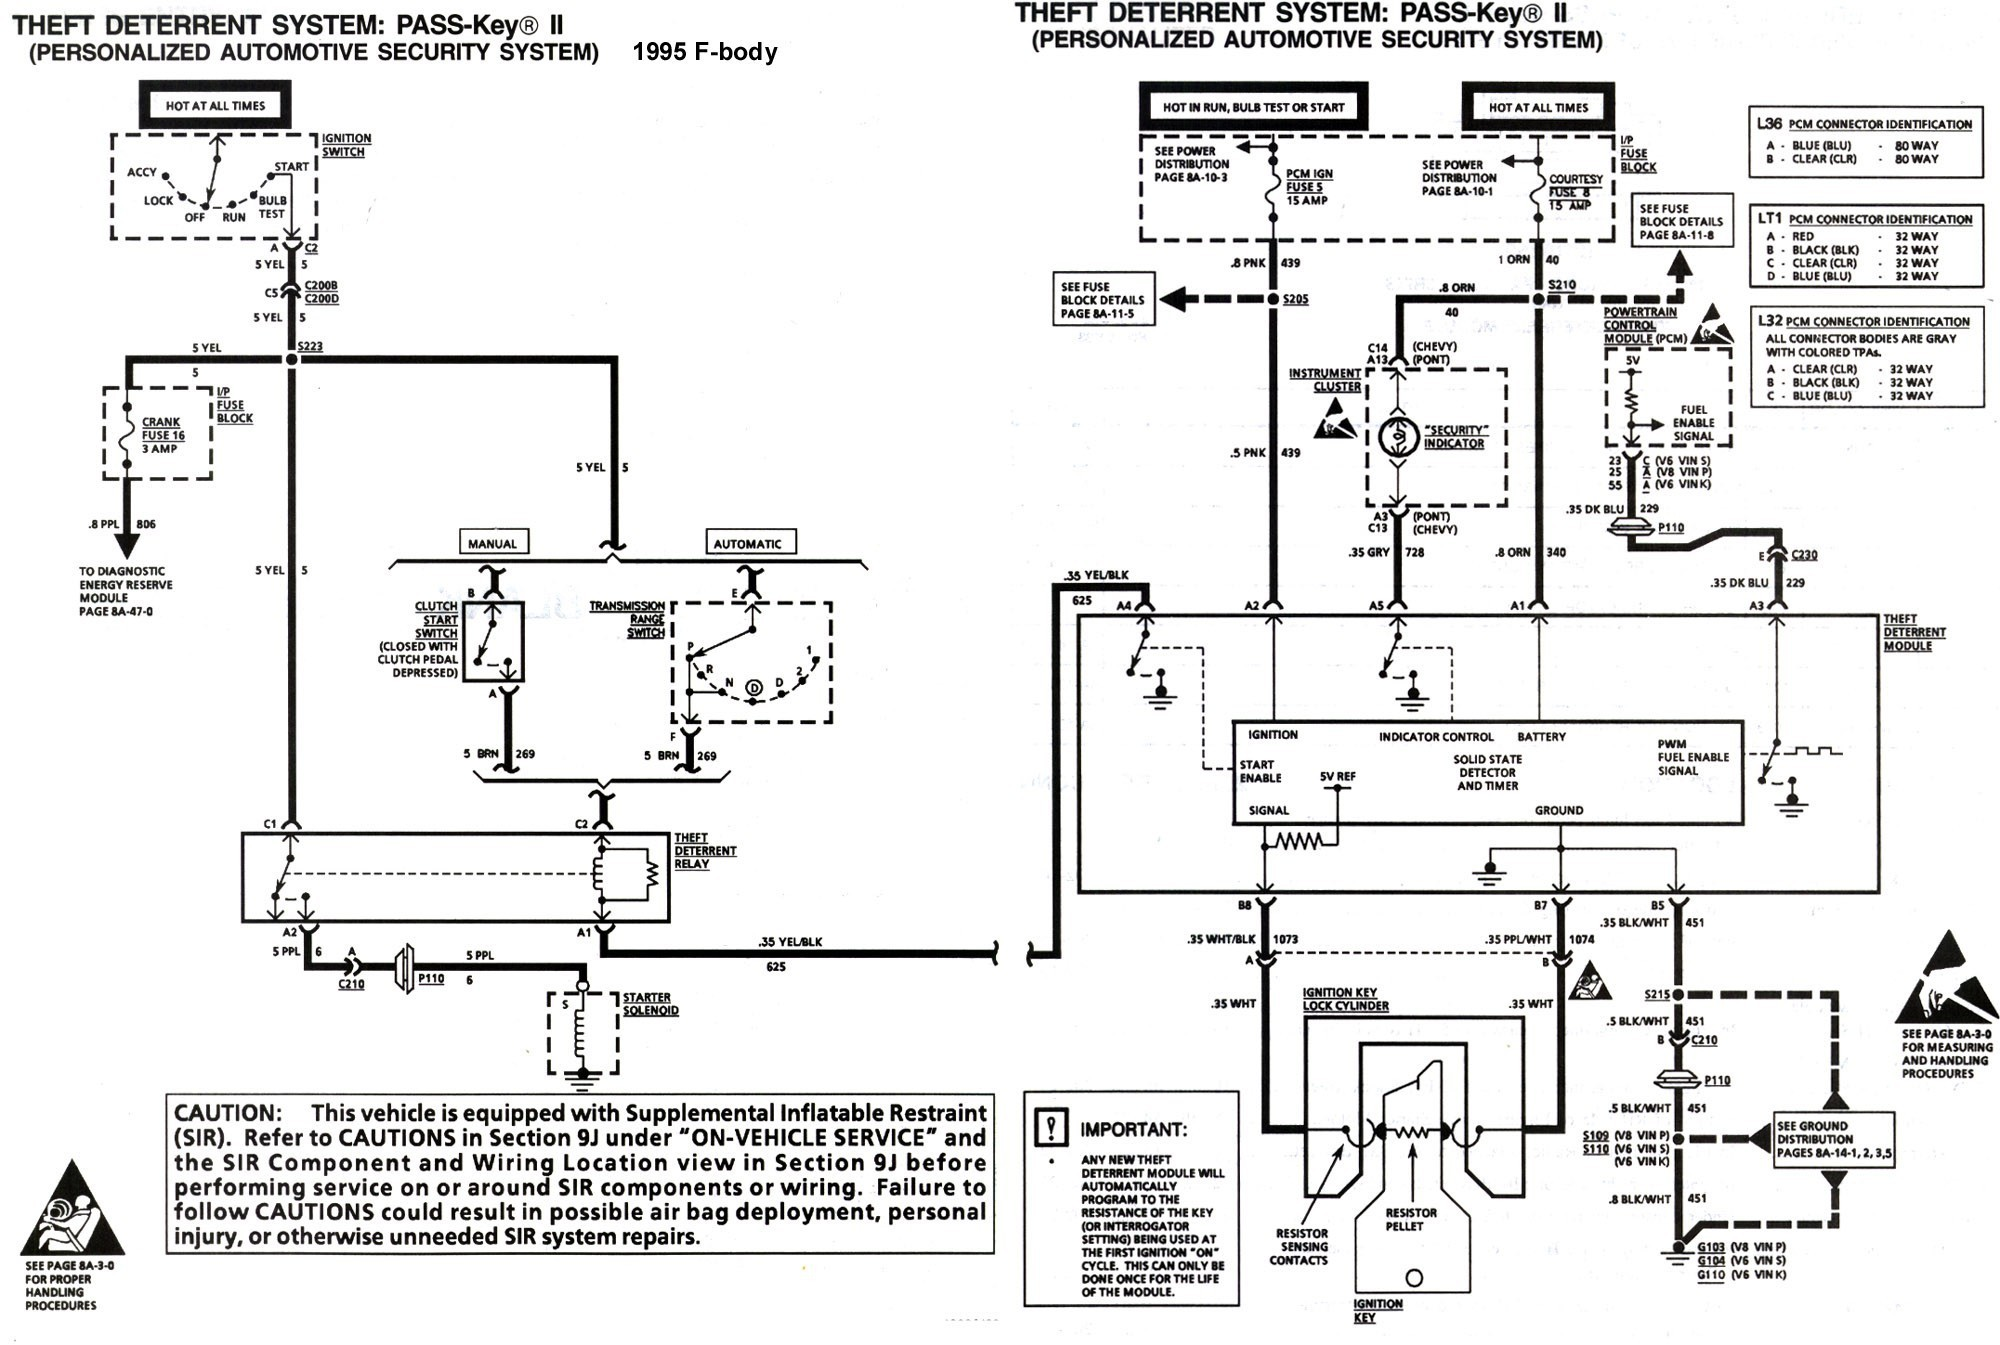 5 7 Vortec Engine Diagram 2 5 3 Vortec Engine Diagram Wiring Diagram Inside Of 5 7 Vortec Engine Diagram 2 1999 5 7 Vortec Engine Diagram Wiring Diagram toolbox